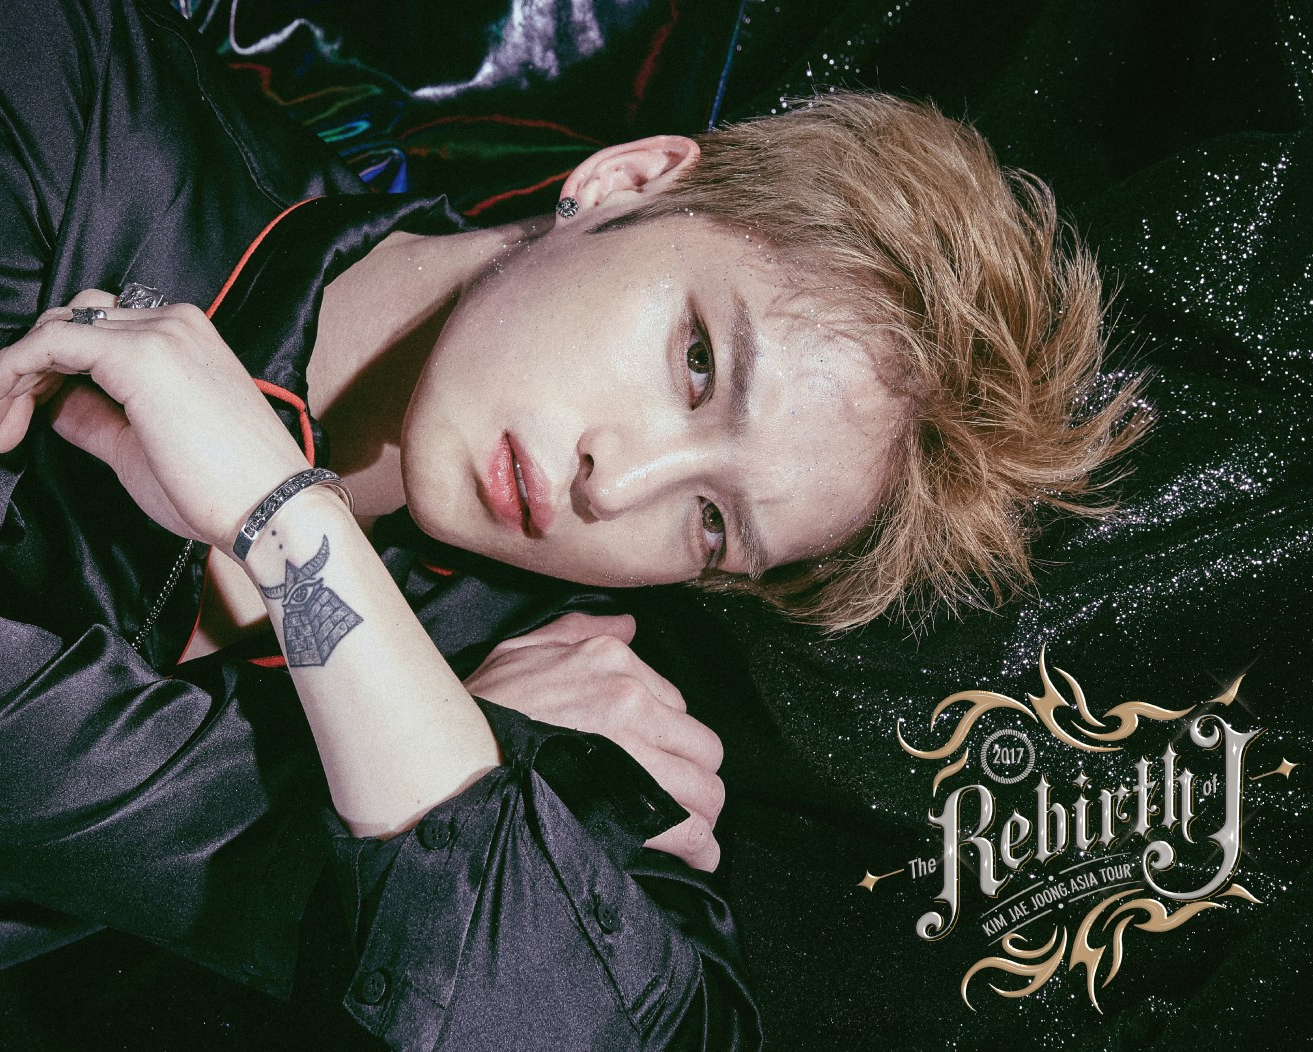 JYJ's Kim Jaejoong Promises Fans He Will Return To Acting This Year